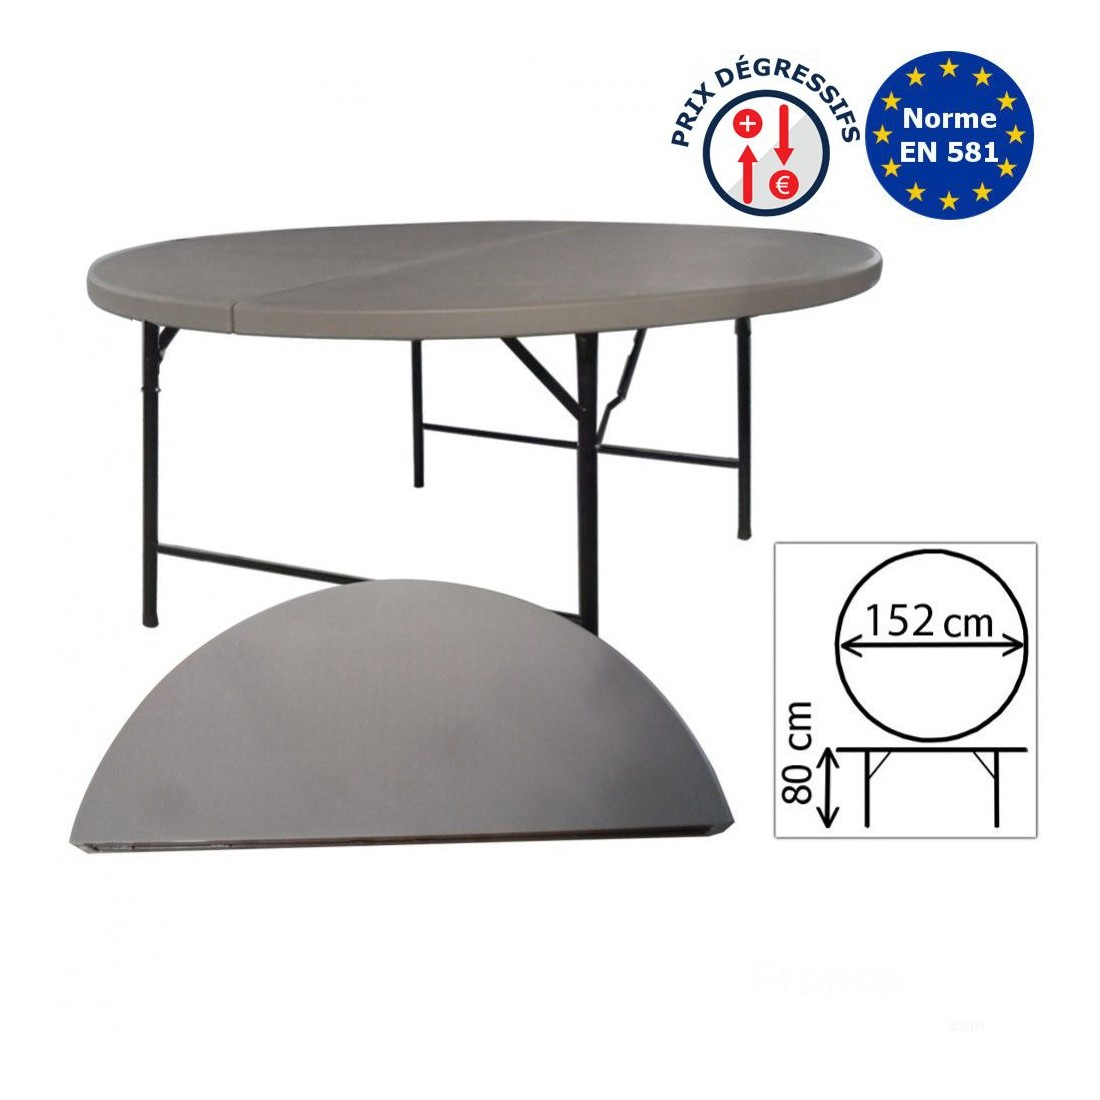 Table Haute Grise Table De Réception Ronde Grise De 152cm Pliante En Valise